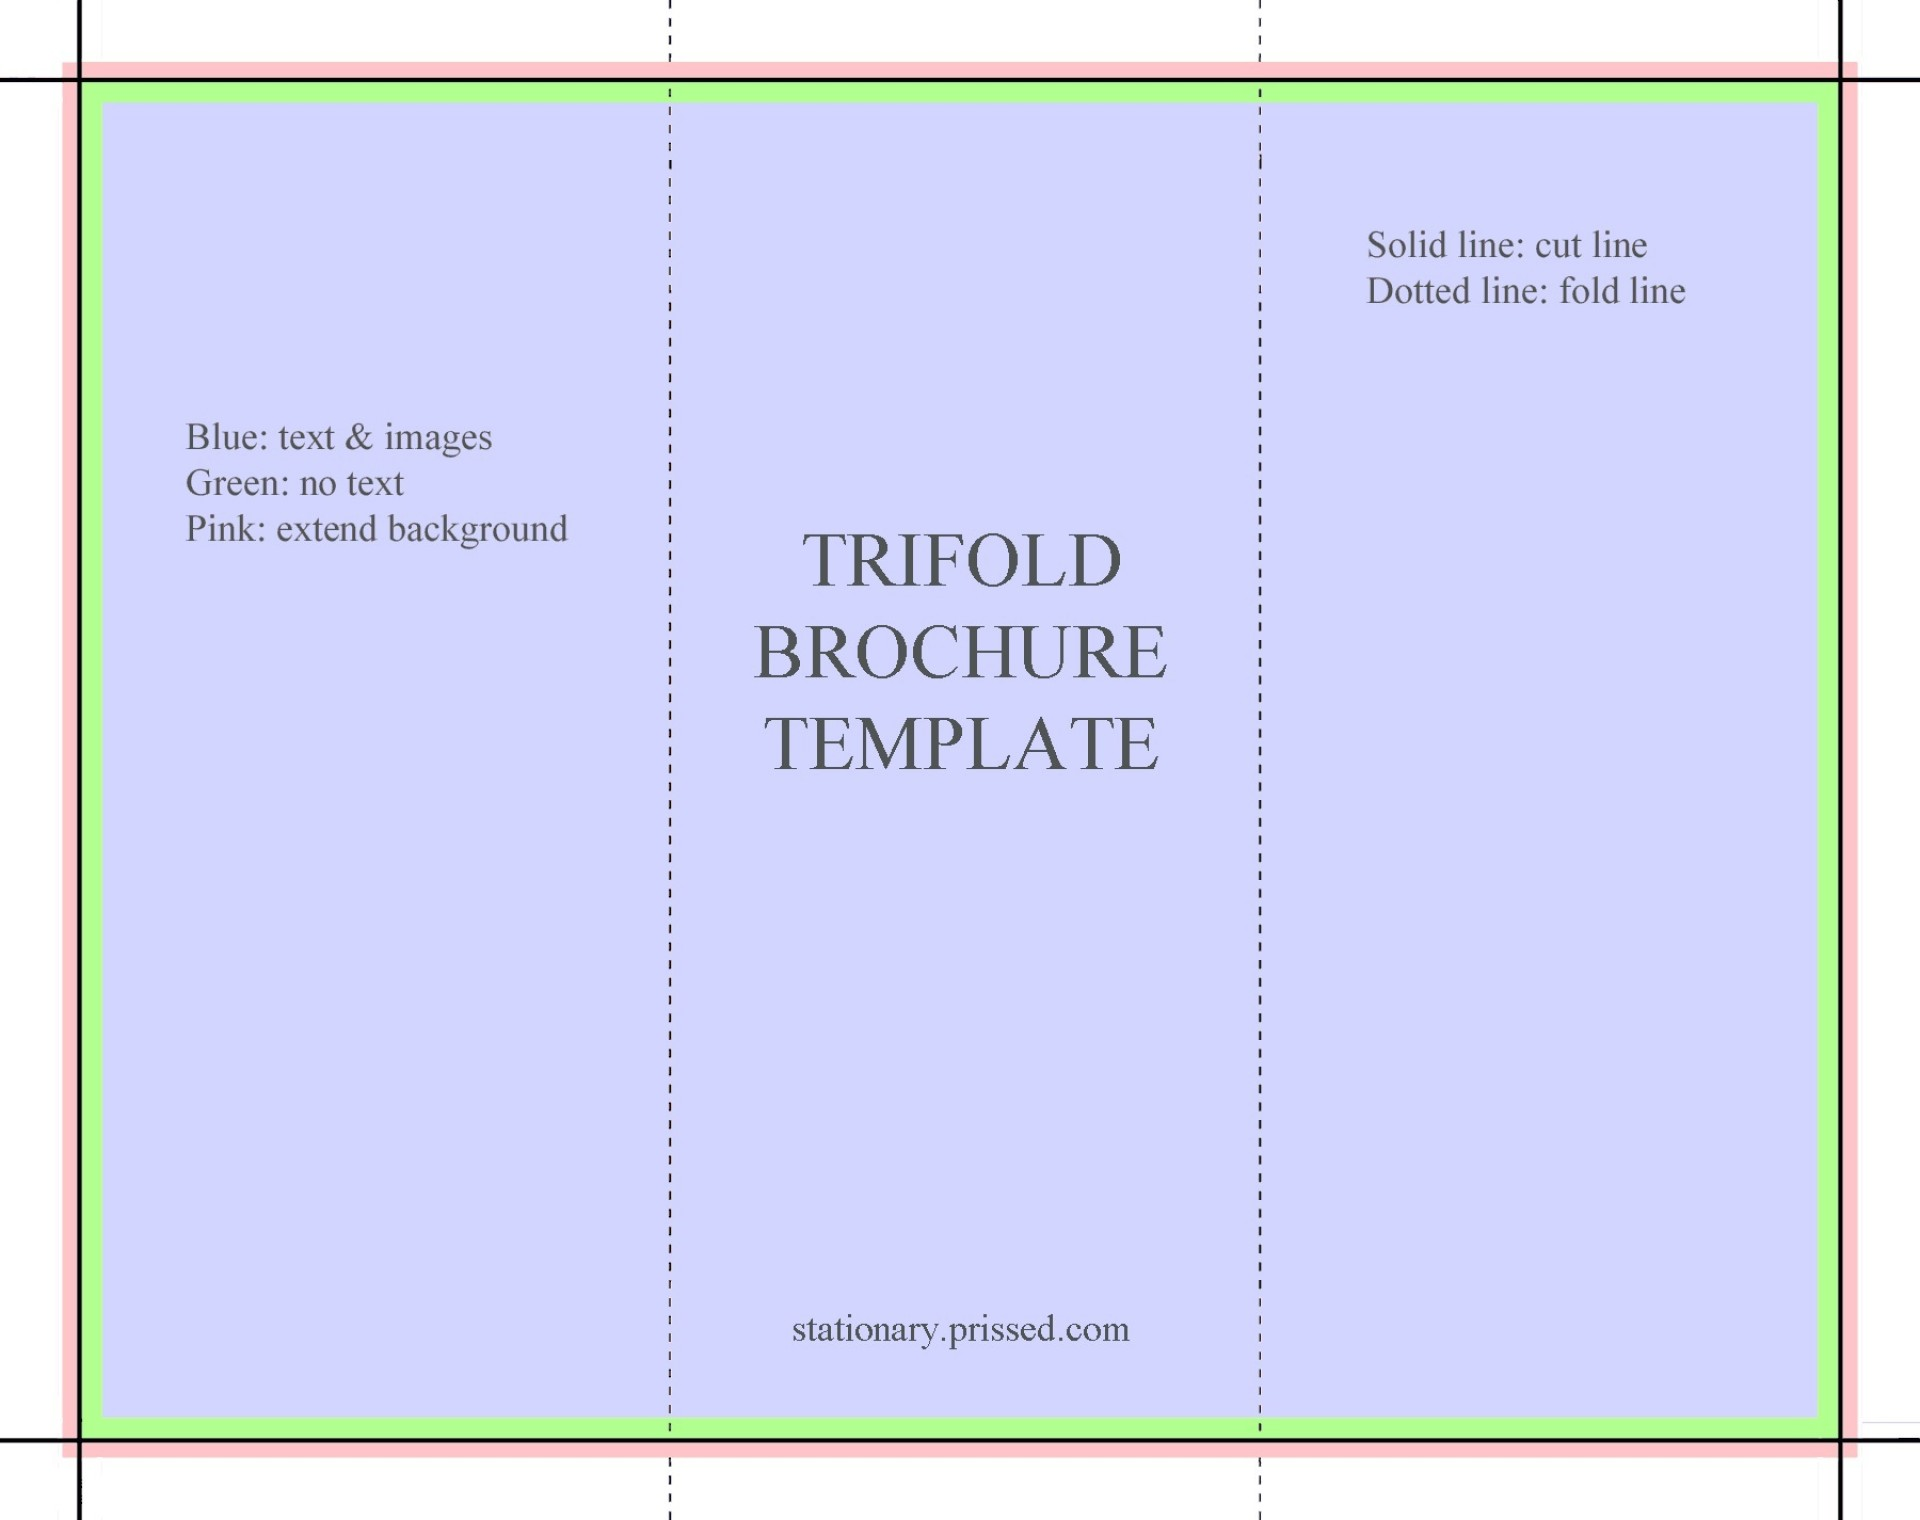 001 Unbelievable Free Online Brochure Template High Def  Templates Download Microsoft Word Real Estate1920